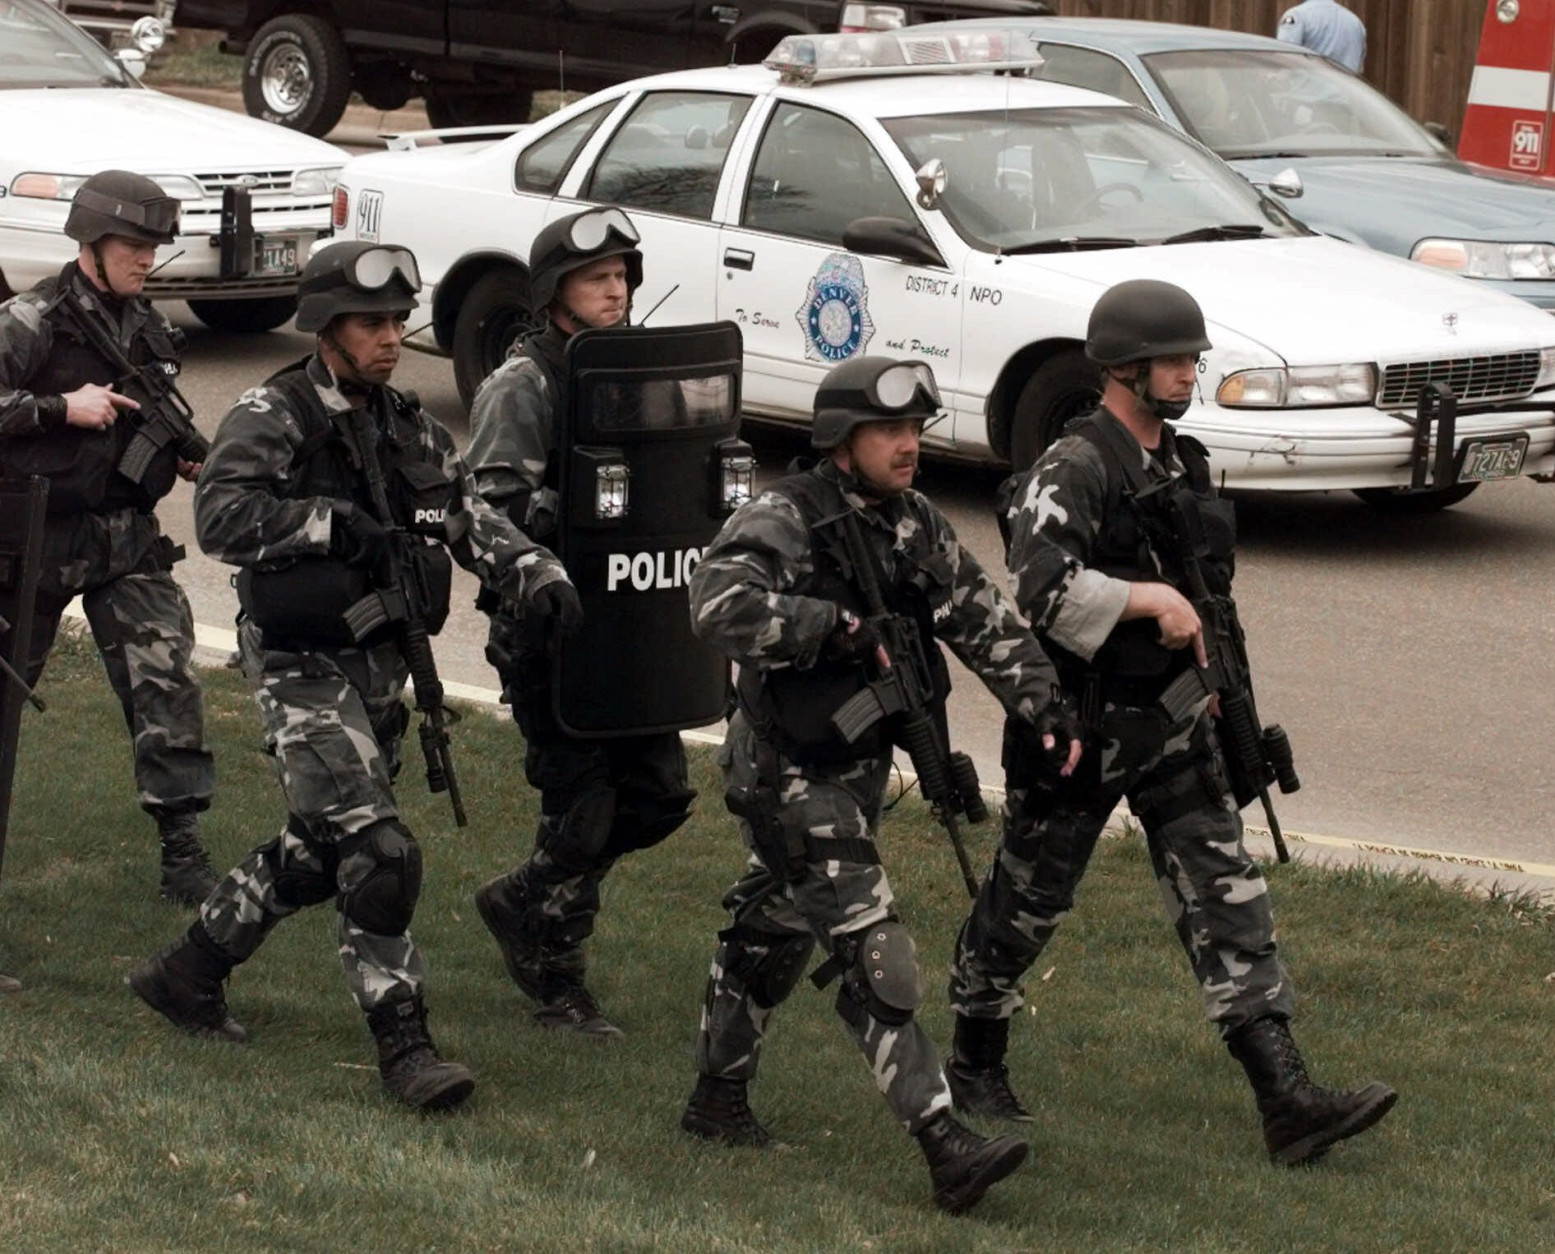 FILE - In this April 20, 1999 file photo members of a police SWAT march to Columbine High School in Littleton, Colo., as they prepare to do a final search of the school. Classes are canceled Tuesday, April 20, 2010 at Columbine High School on the anniversary of the 1999 shootings. Twelve students and a teacher died in the shootings before two teenage gunmen committed suicide. (AP Photo/Ed Andrieski, File)